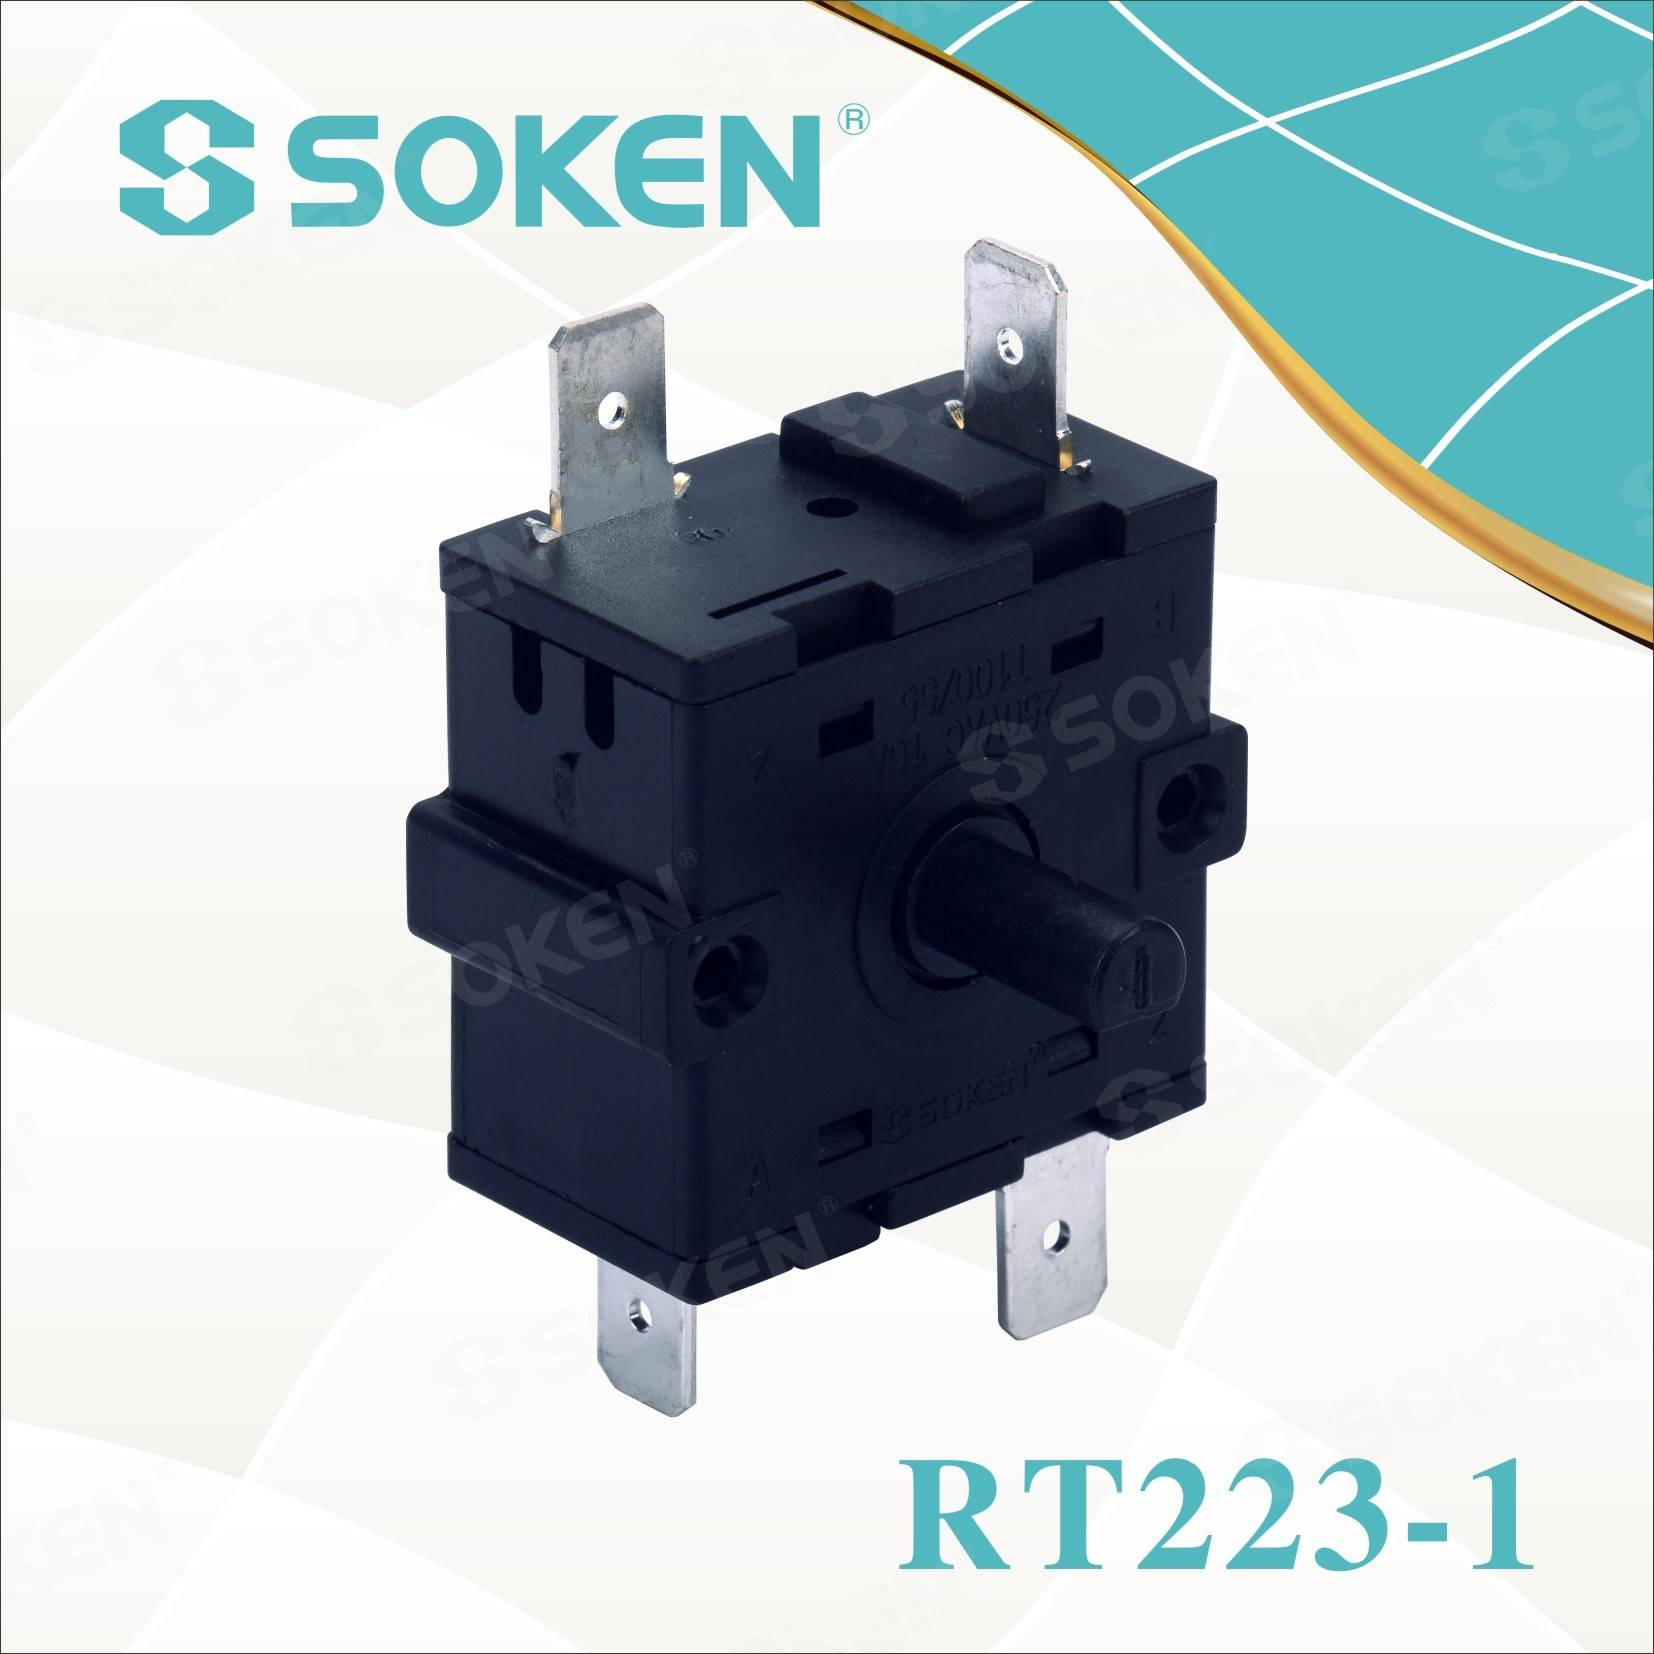 Super Purchasing for Illuminated Key Switch -